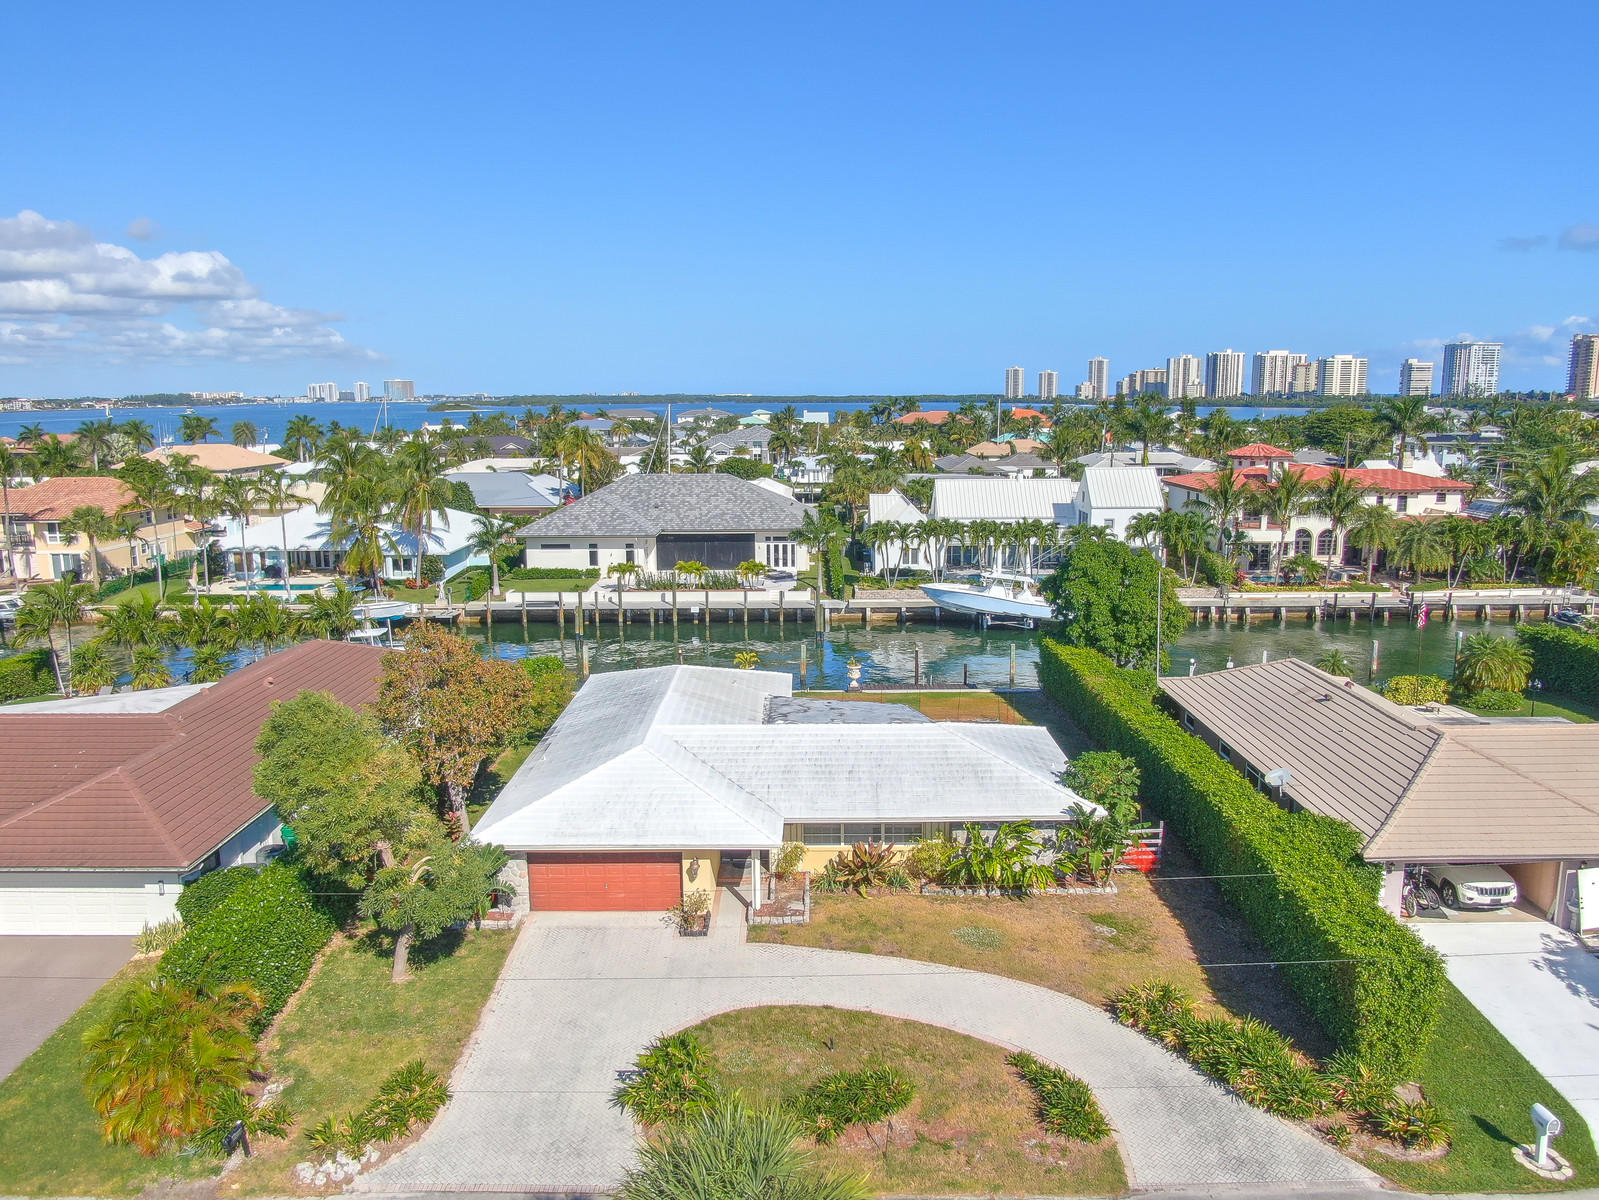 New Home for sale at 1090 Coral Way in Singer Island